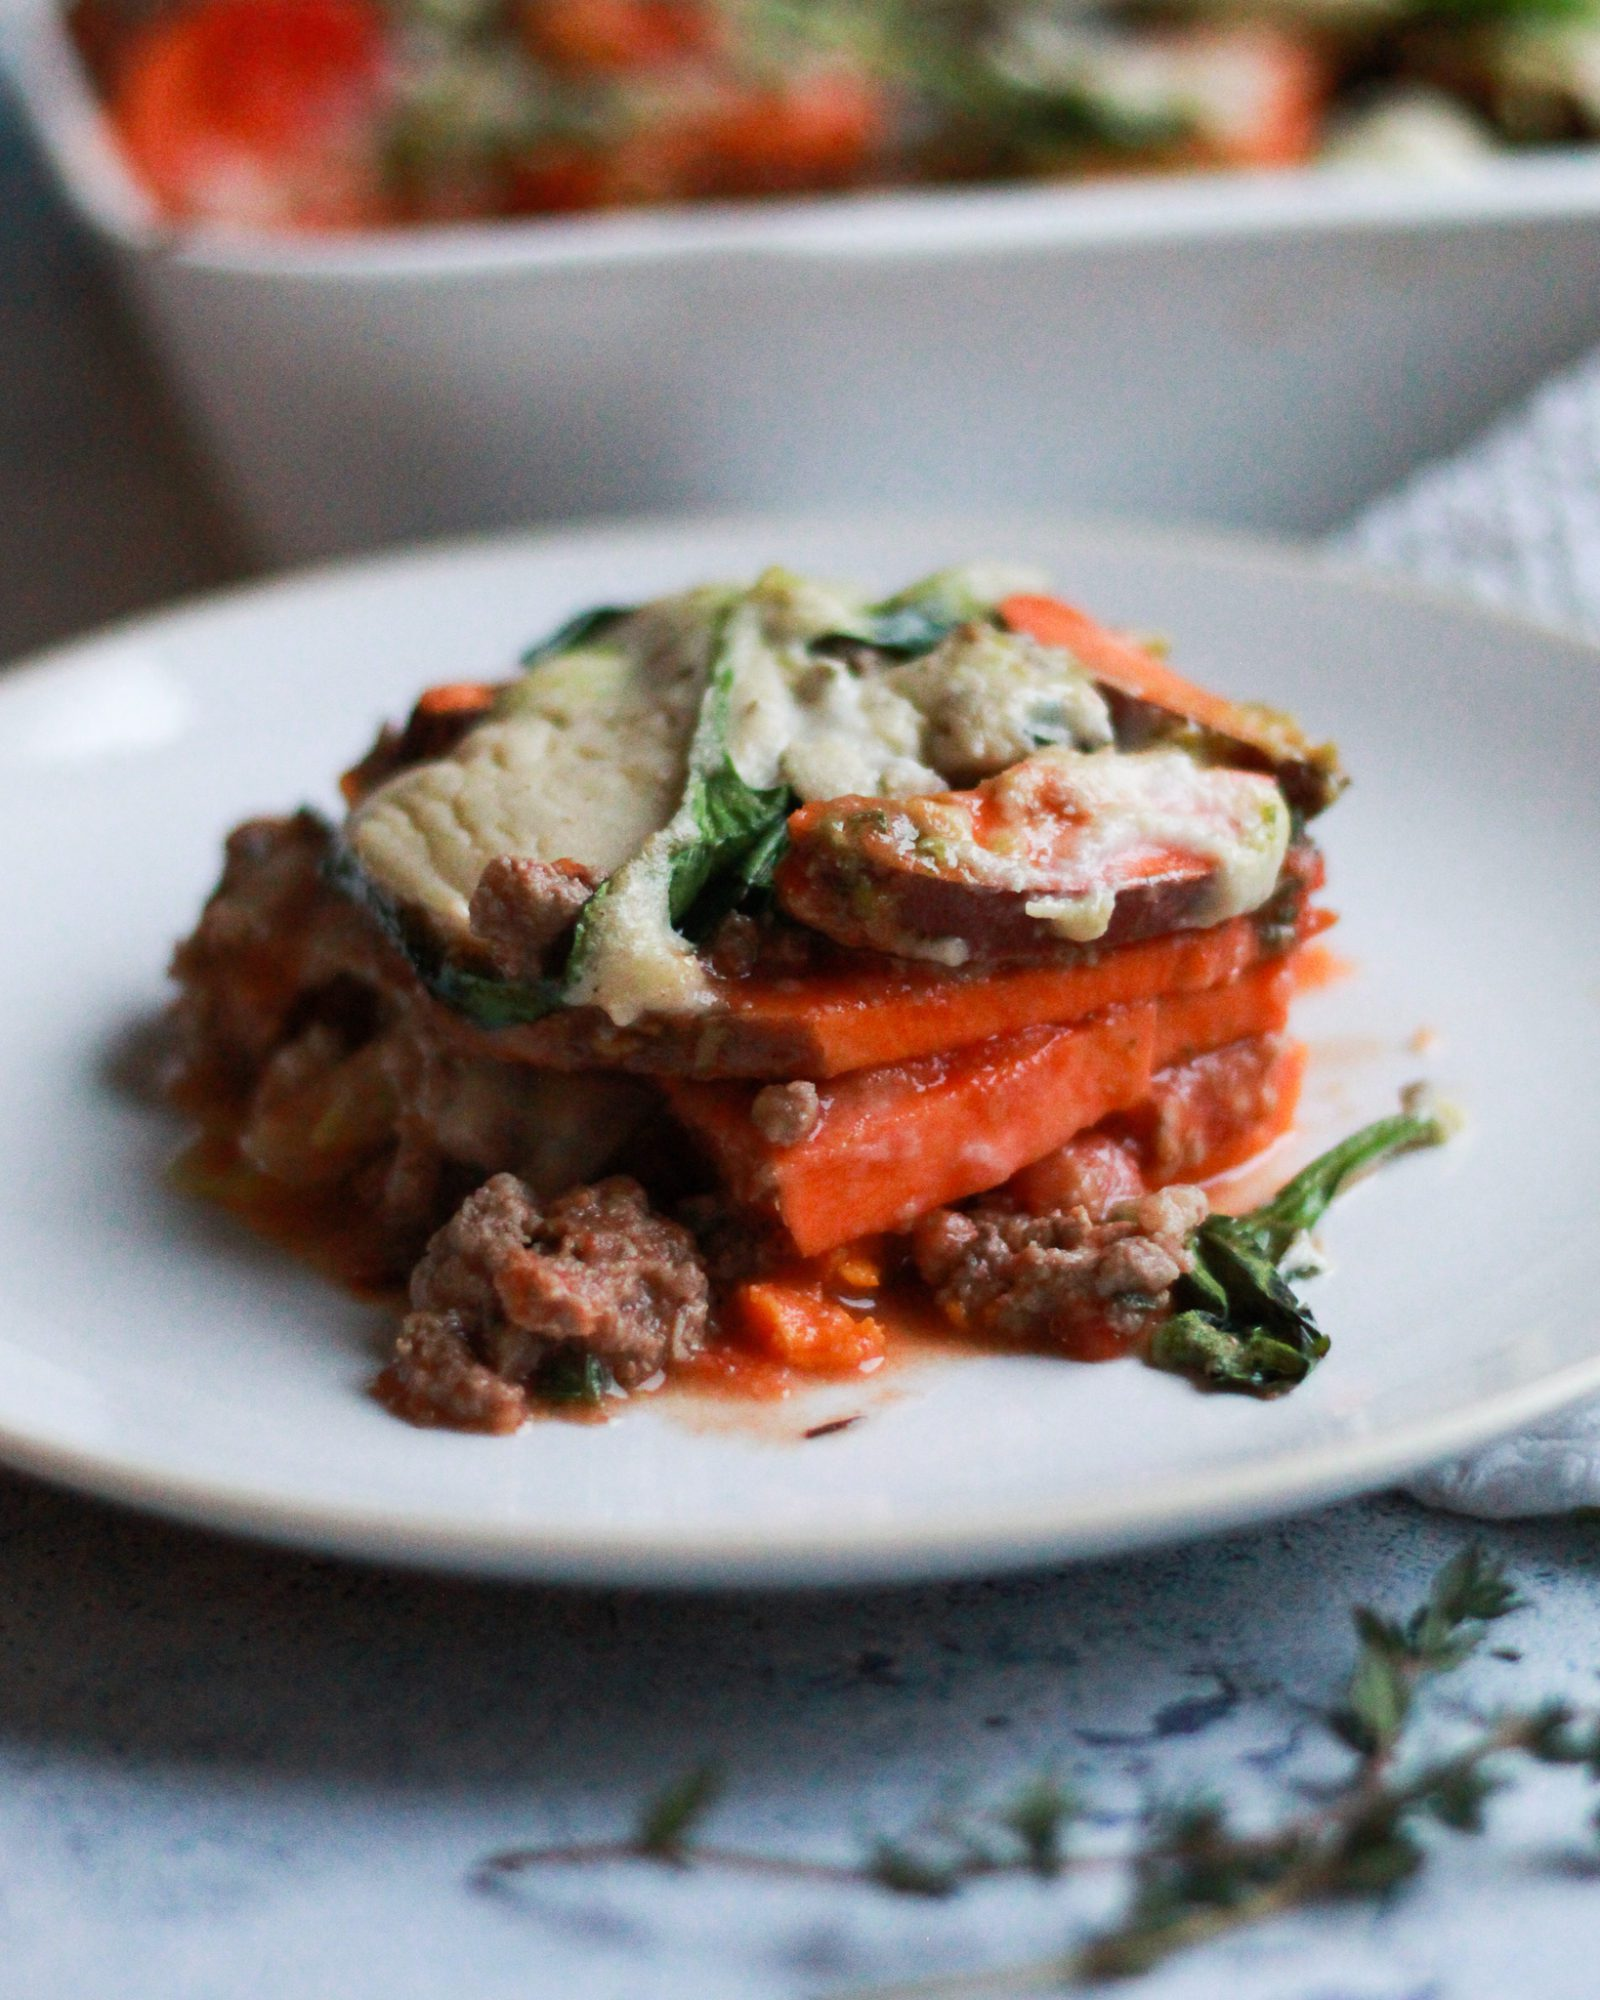 This paleo lasagna tastes just as delicious as the traditional, but it's paleo, Whole30 compliant, dairy free, gluten free, and grain free!